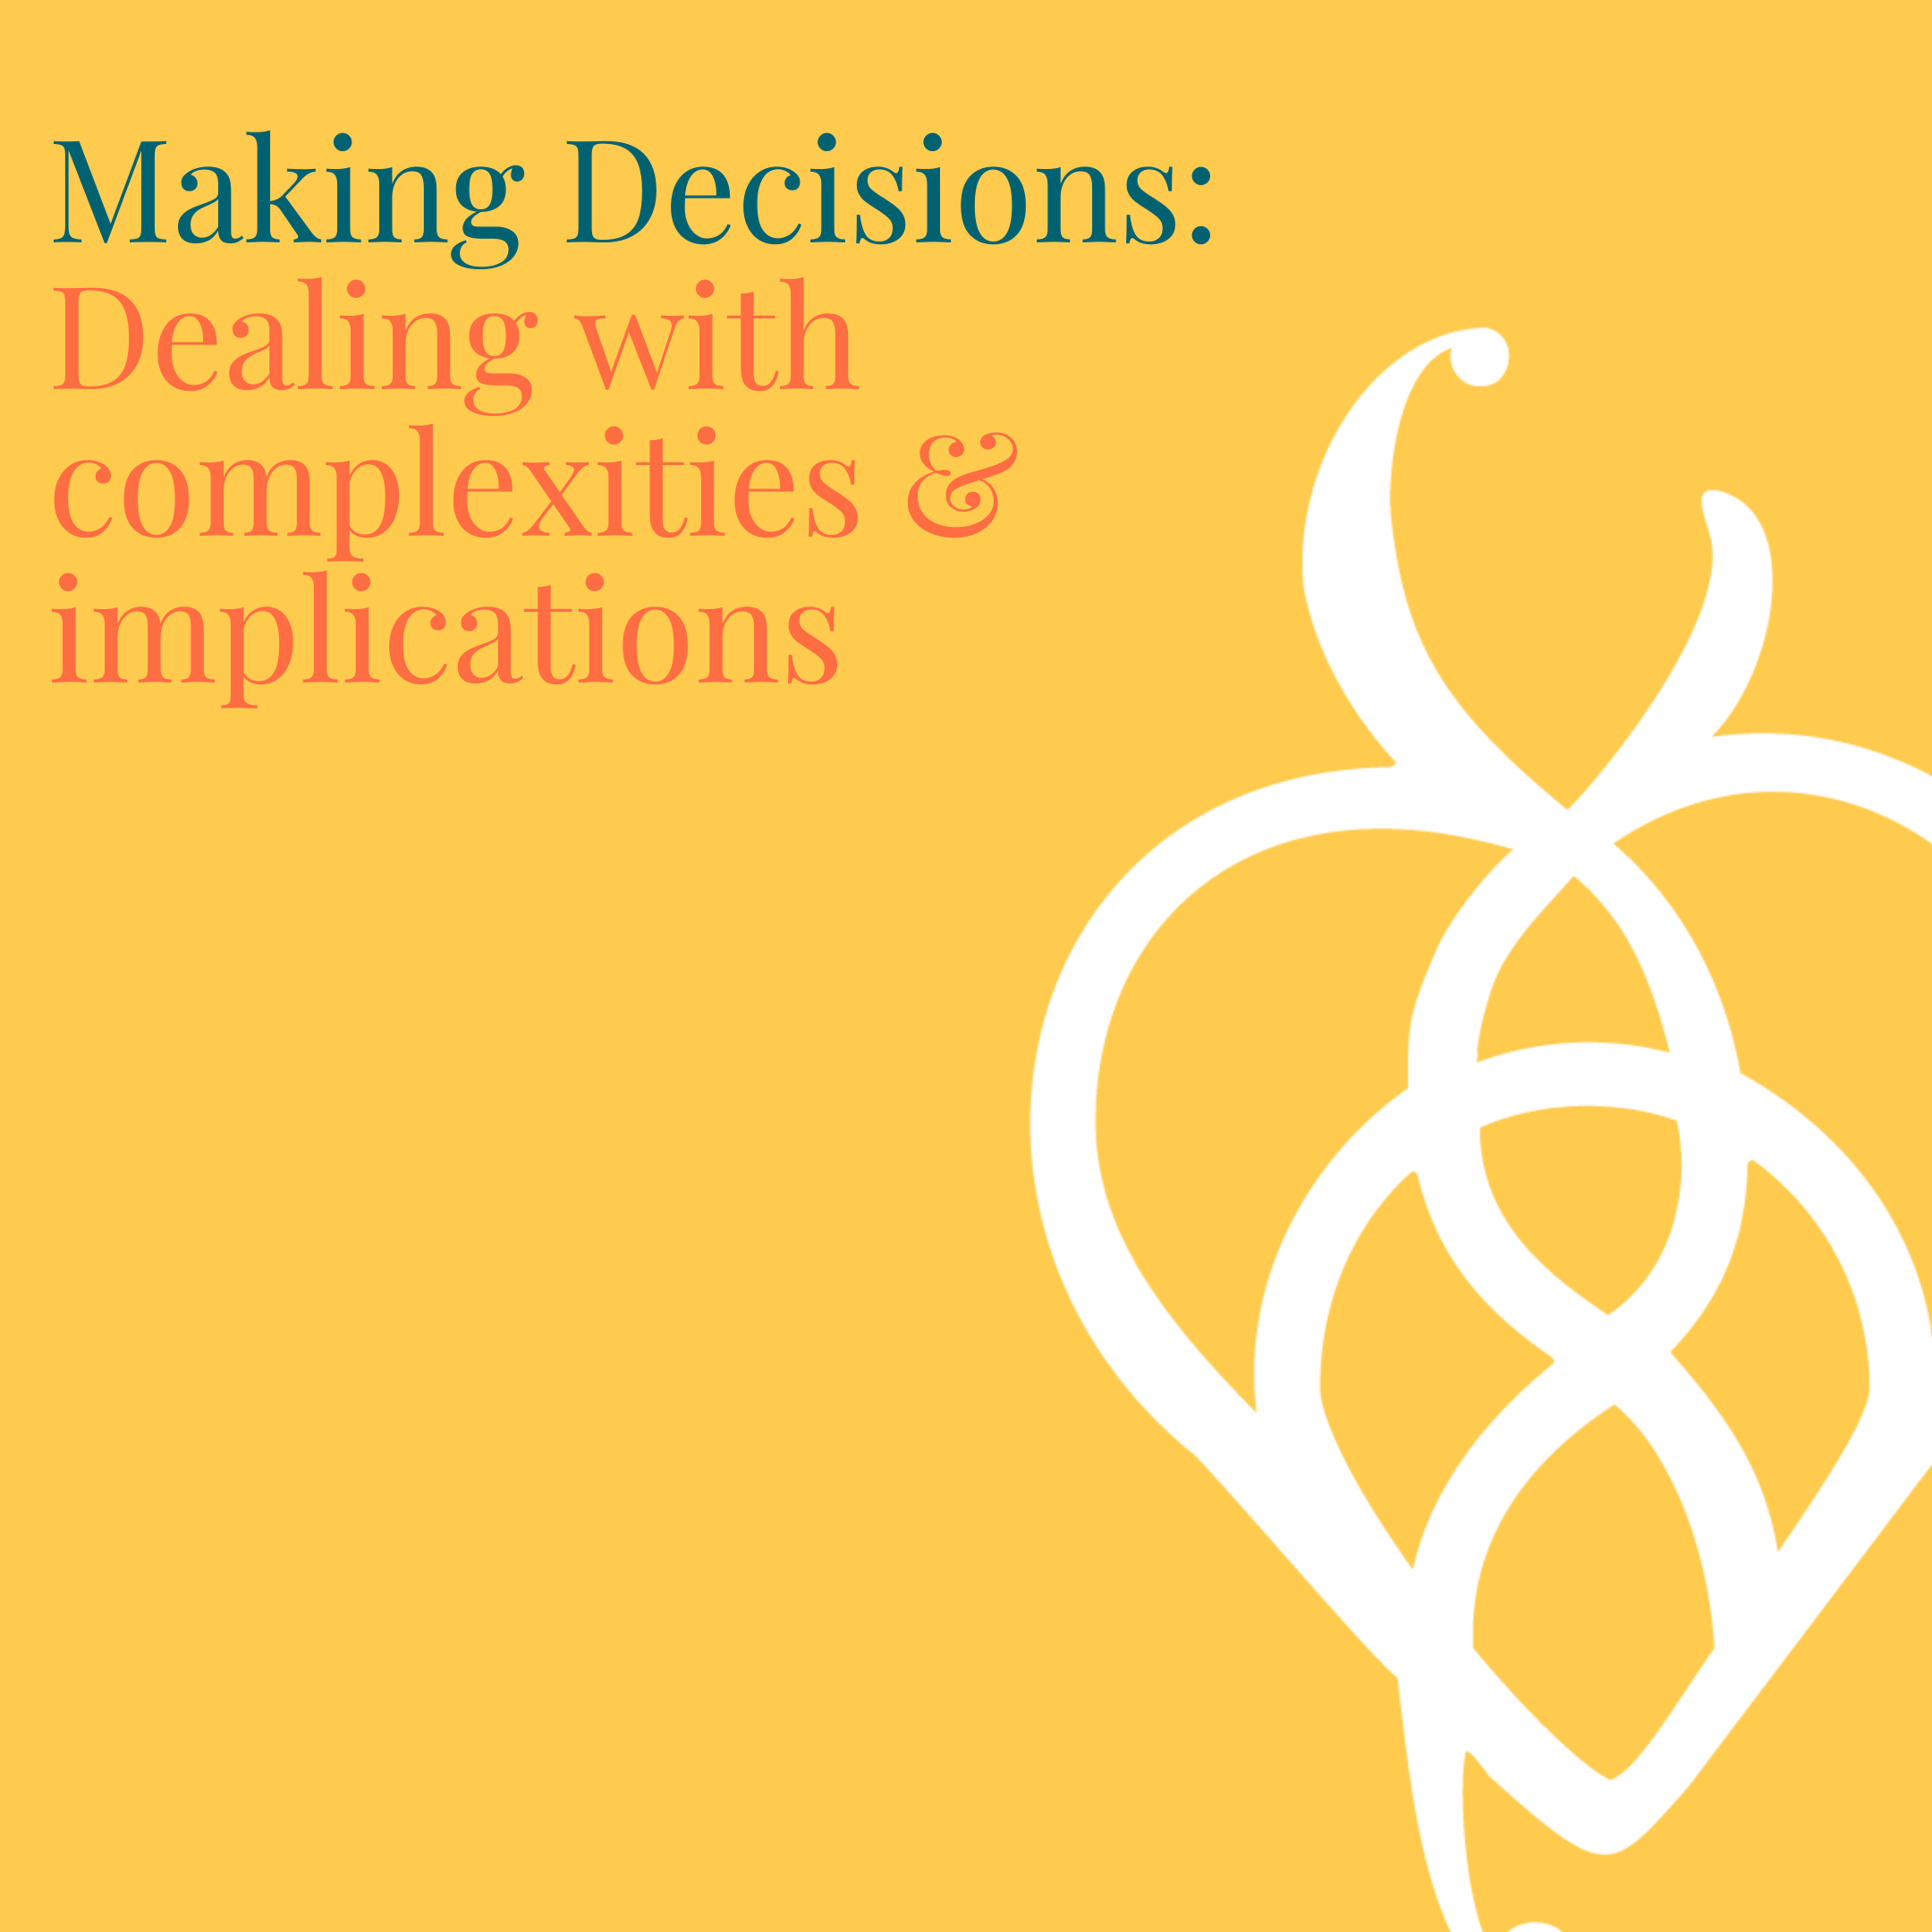 Making Decisions: Dealing with complexities and implications